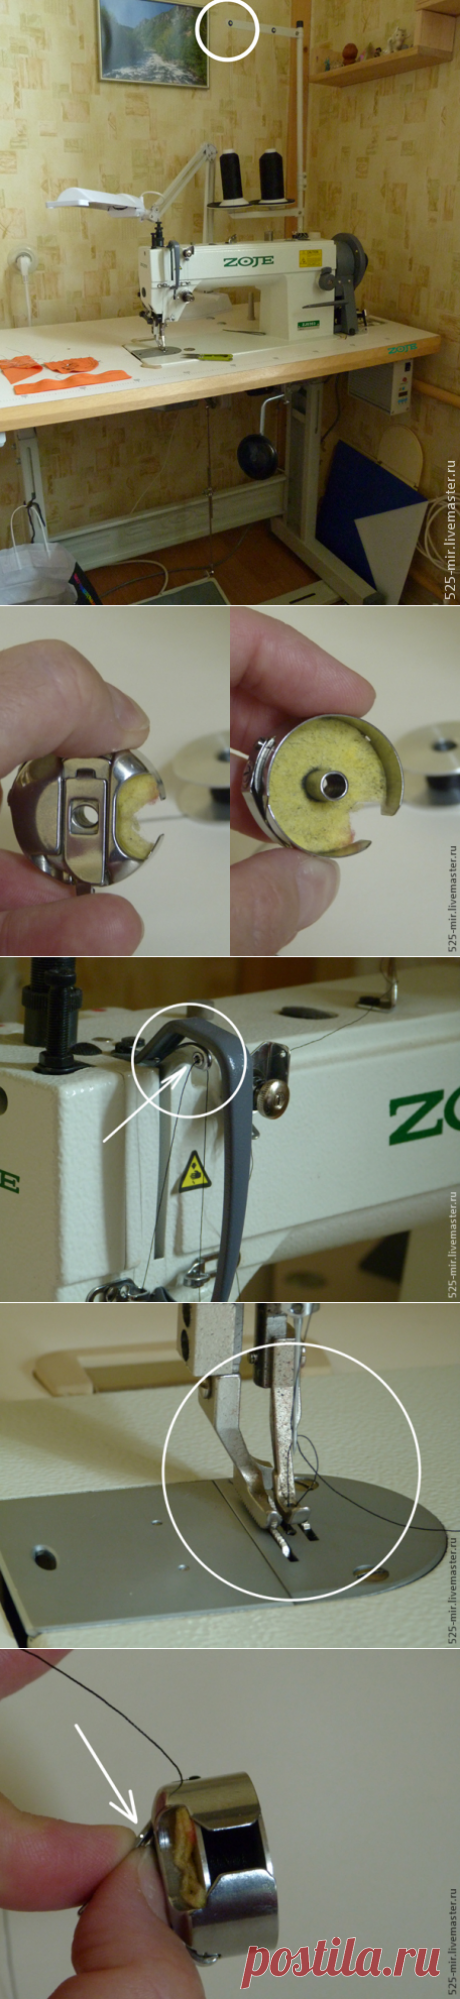 How to adjust a line in the sewing machine?